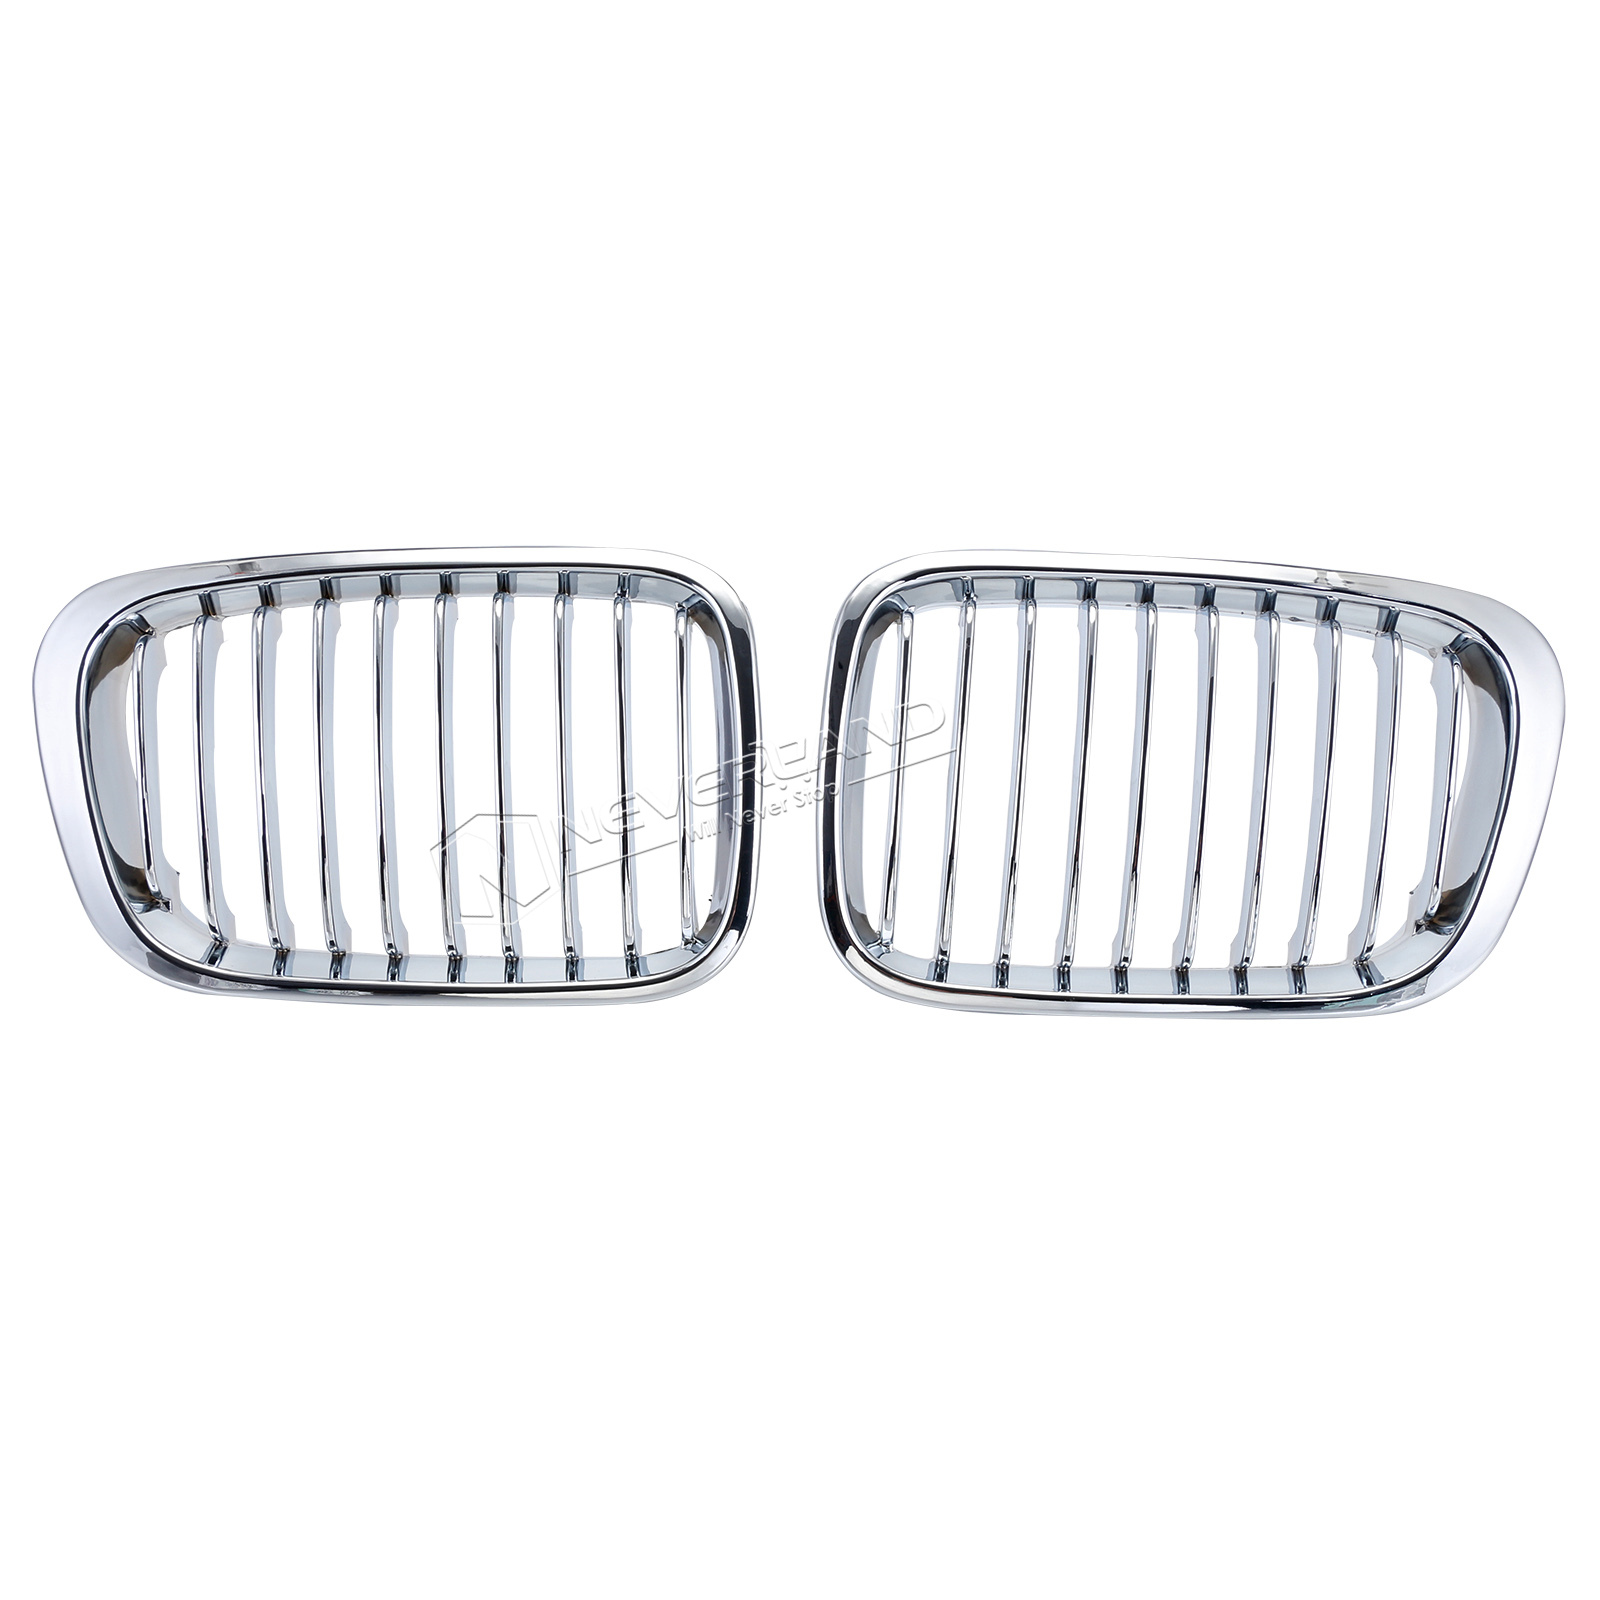 Chrome Front Kidney Grille For Bmw E46 3 Series 4 Doors